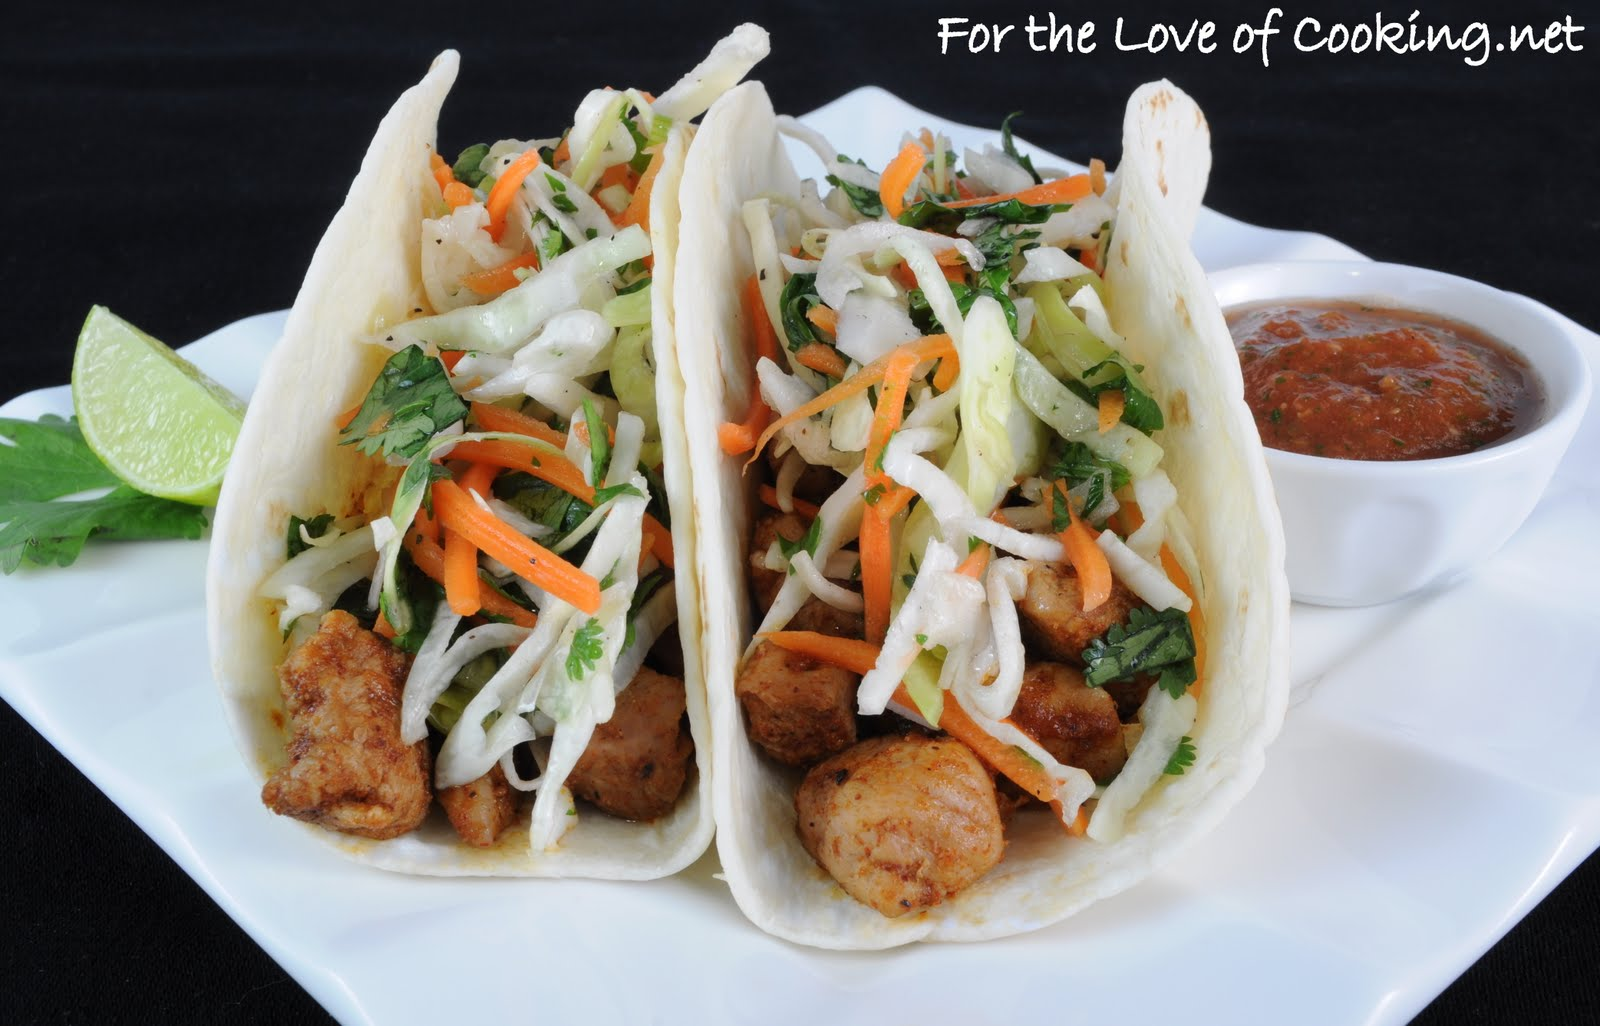 Pork Tenderloin Tacos With Tangy Slaw Recipes — Dishmaps